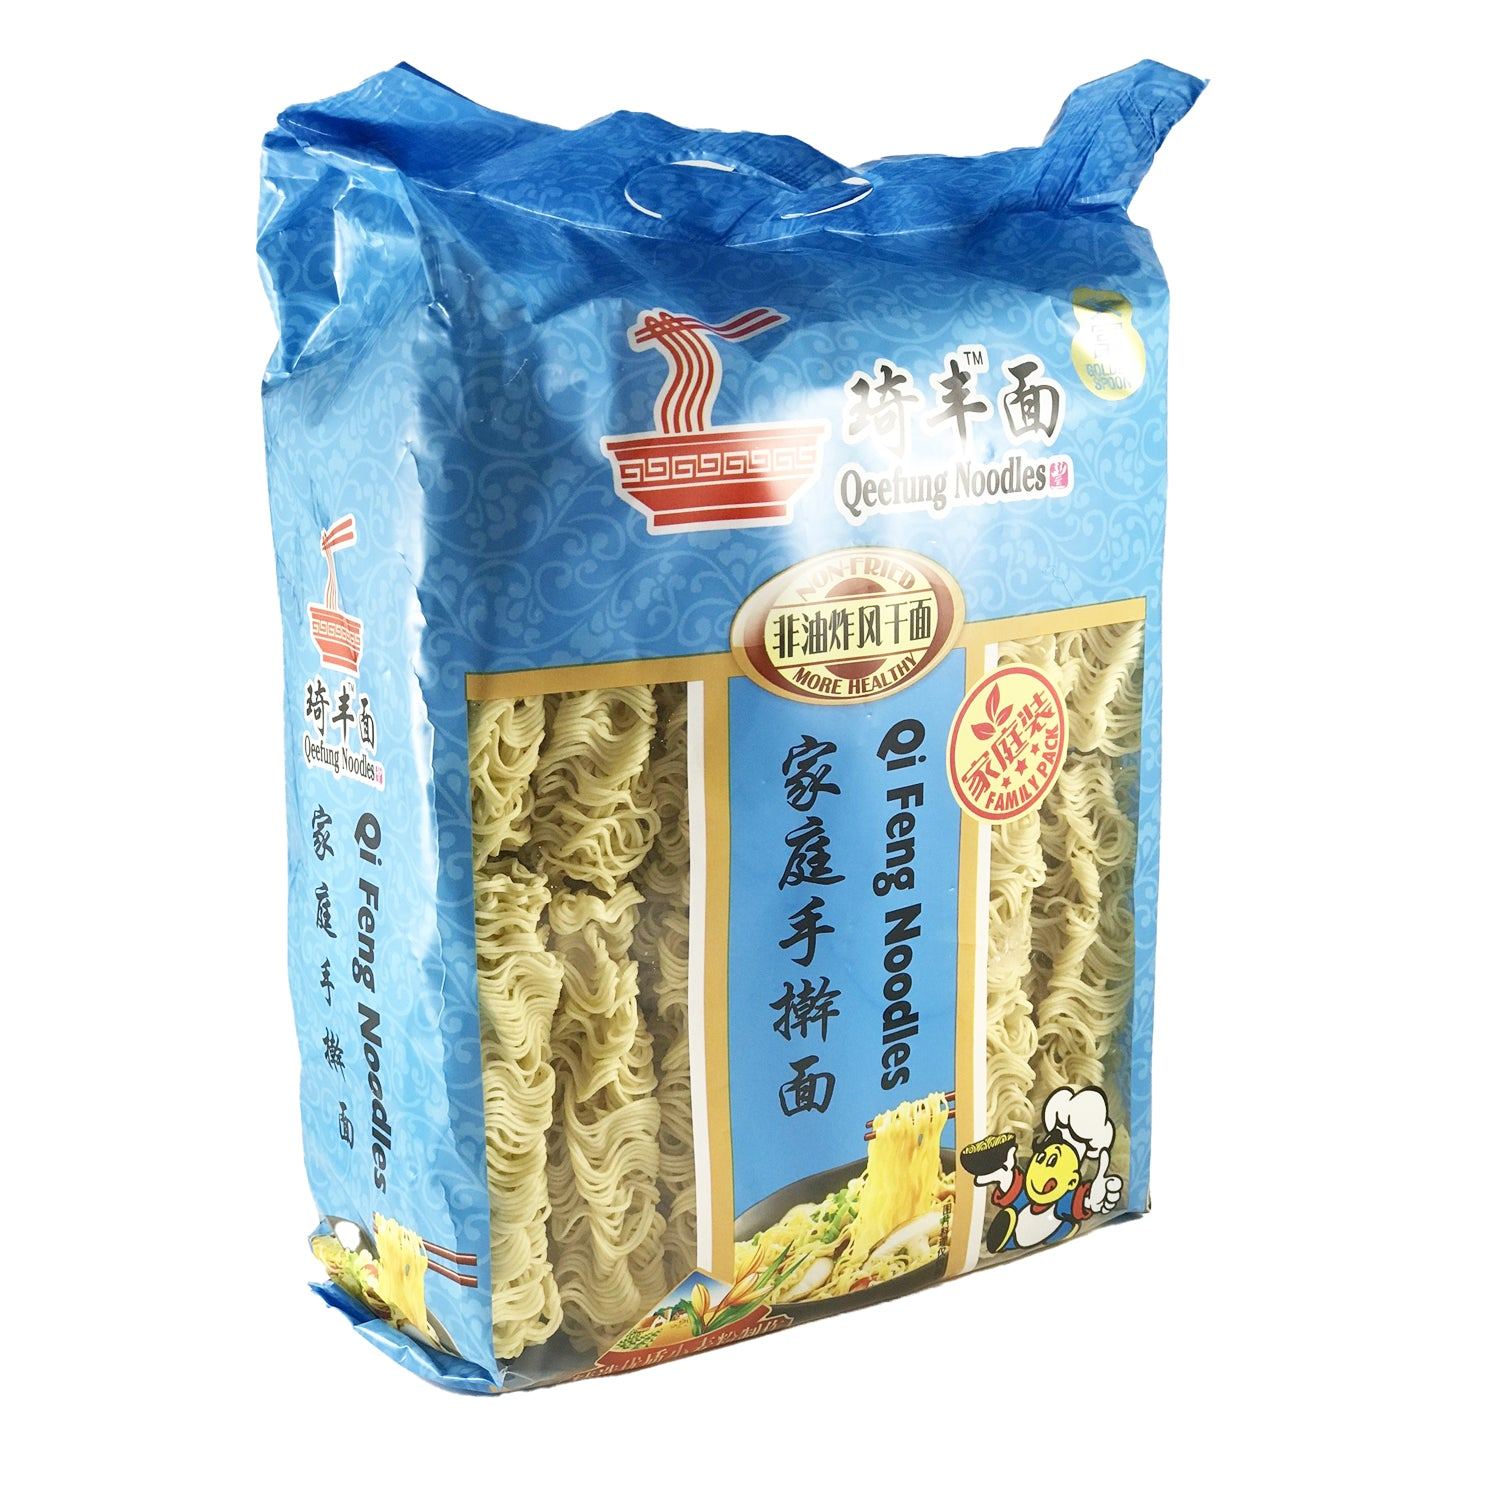 QeeFung Dried Noodle 琦豐麺 家庭手擀麺